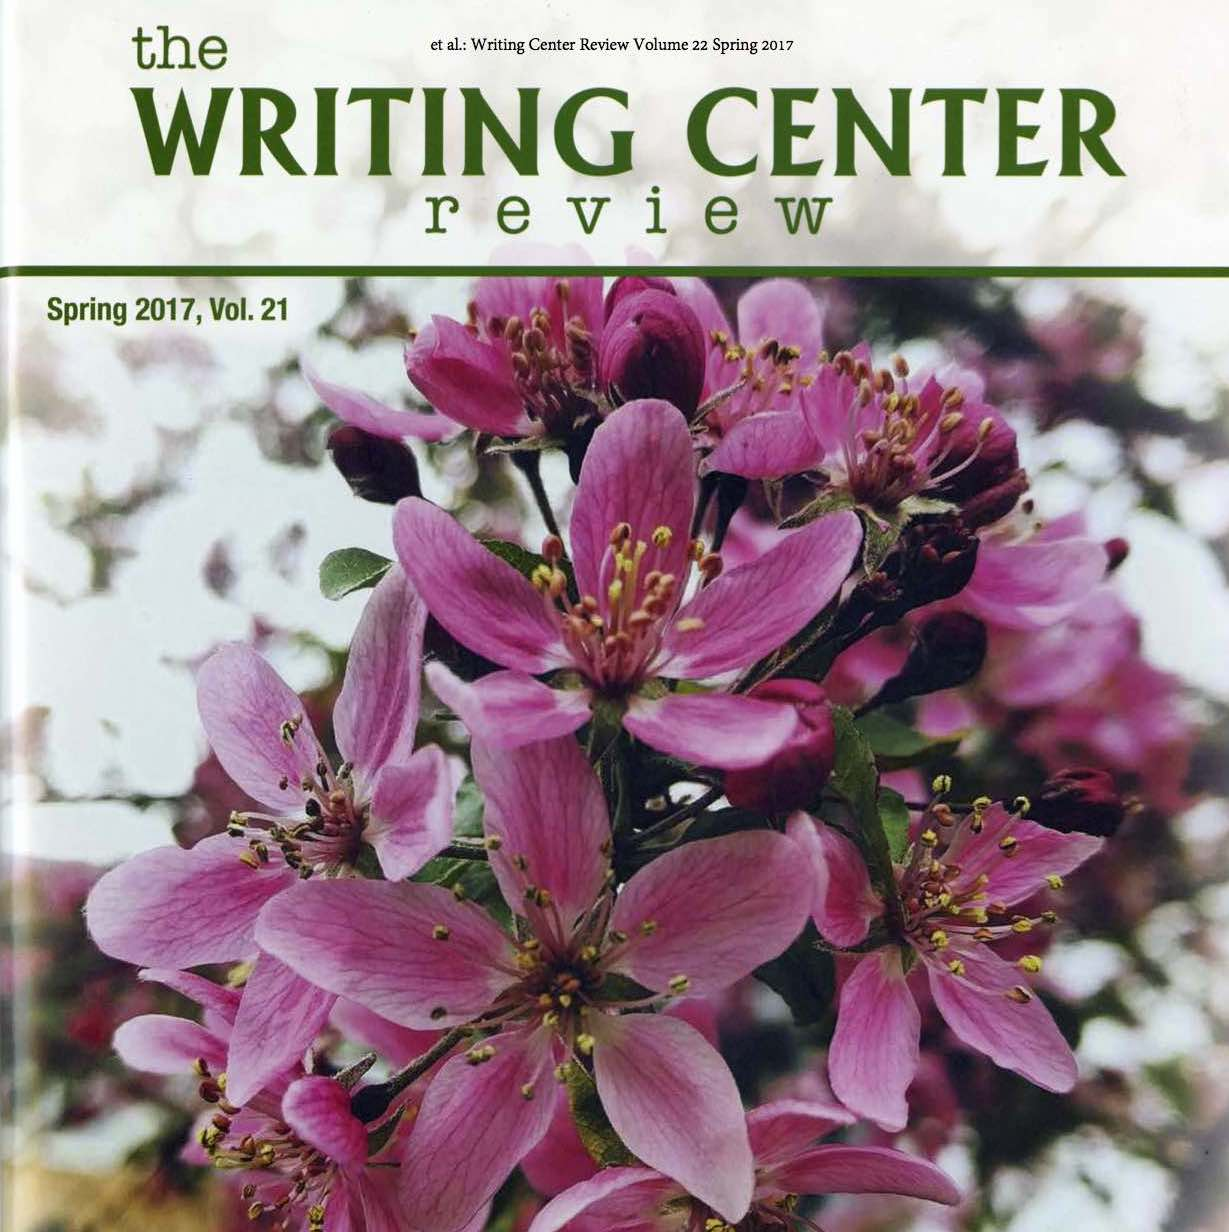 Writing Center Review Volume 22 Spring 2017-2